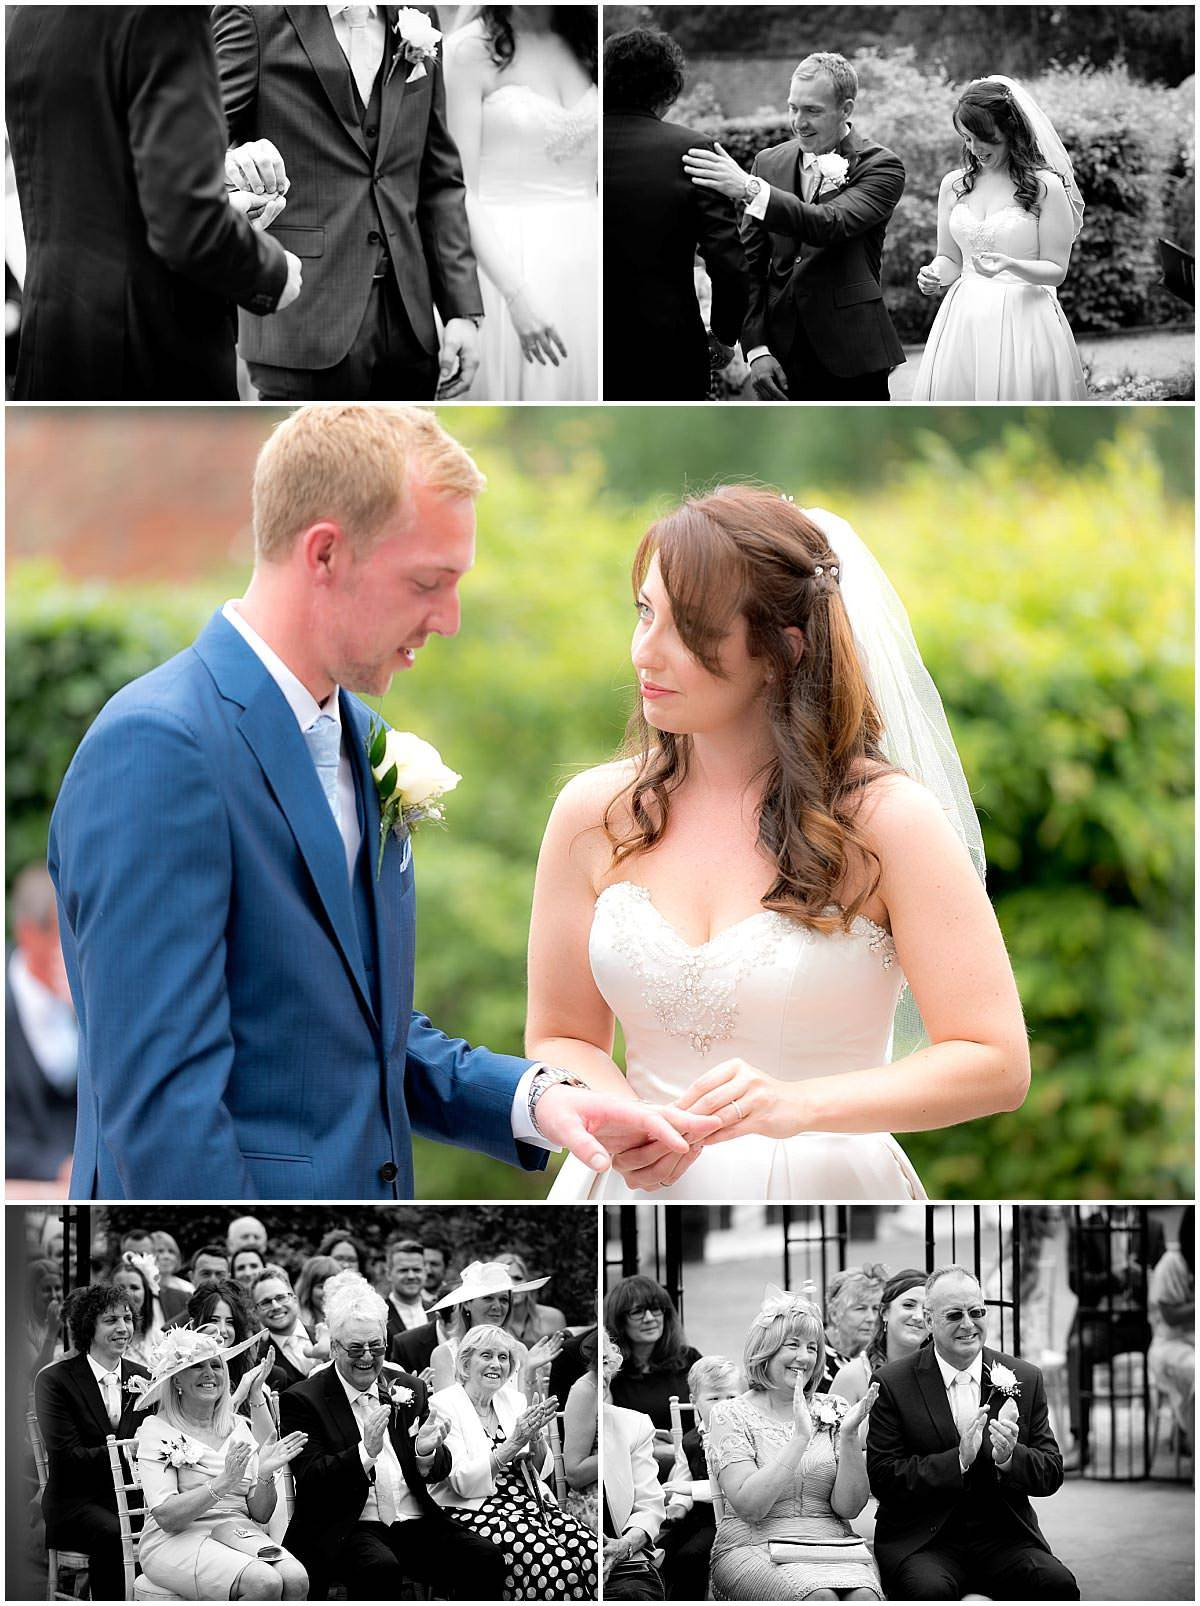 The Walled Gardens Wedding ceremony